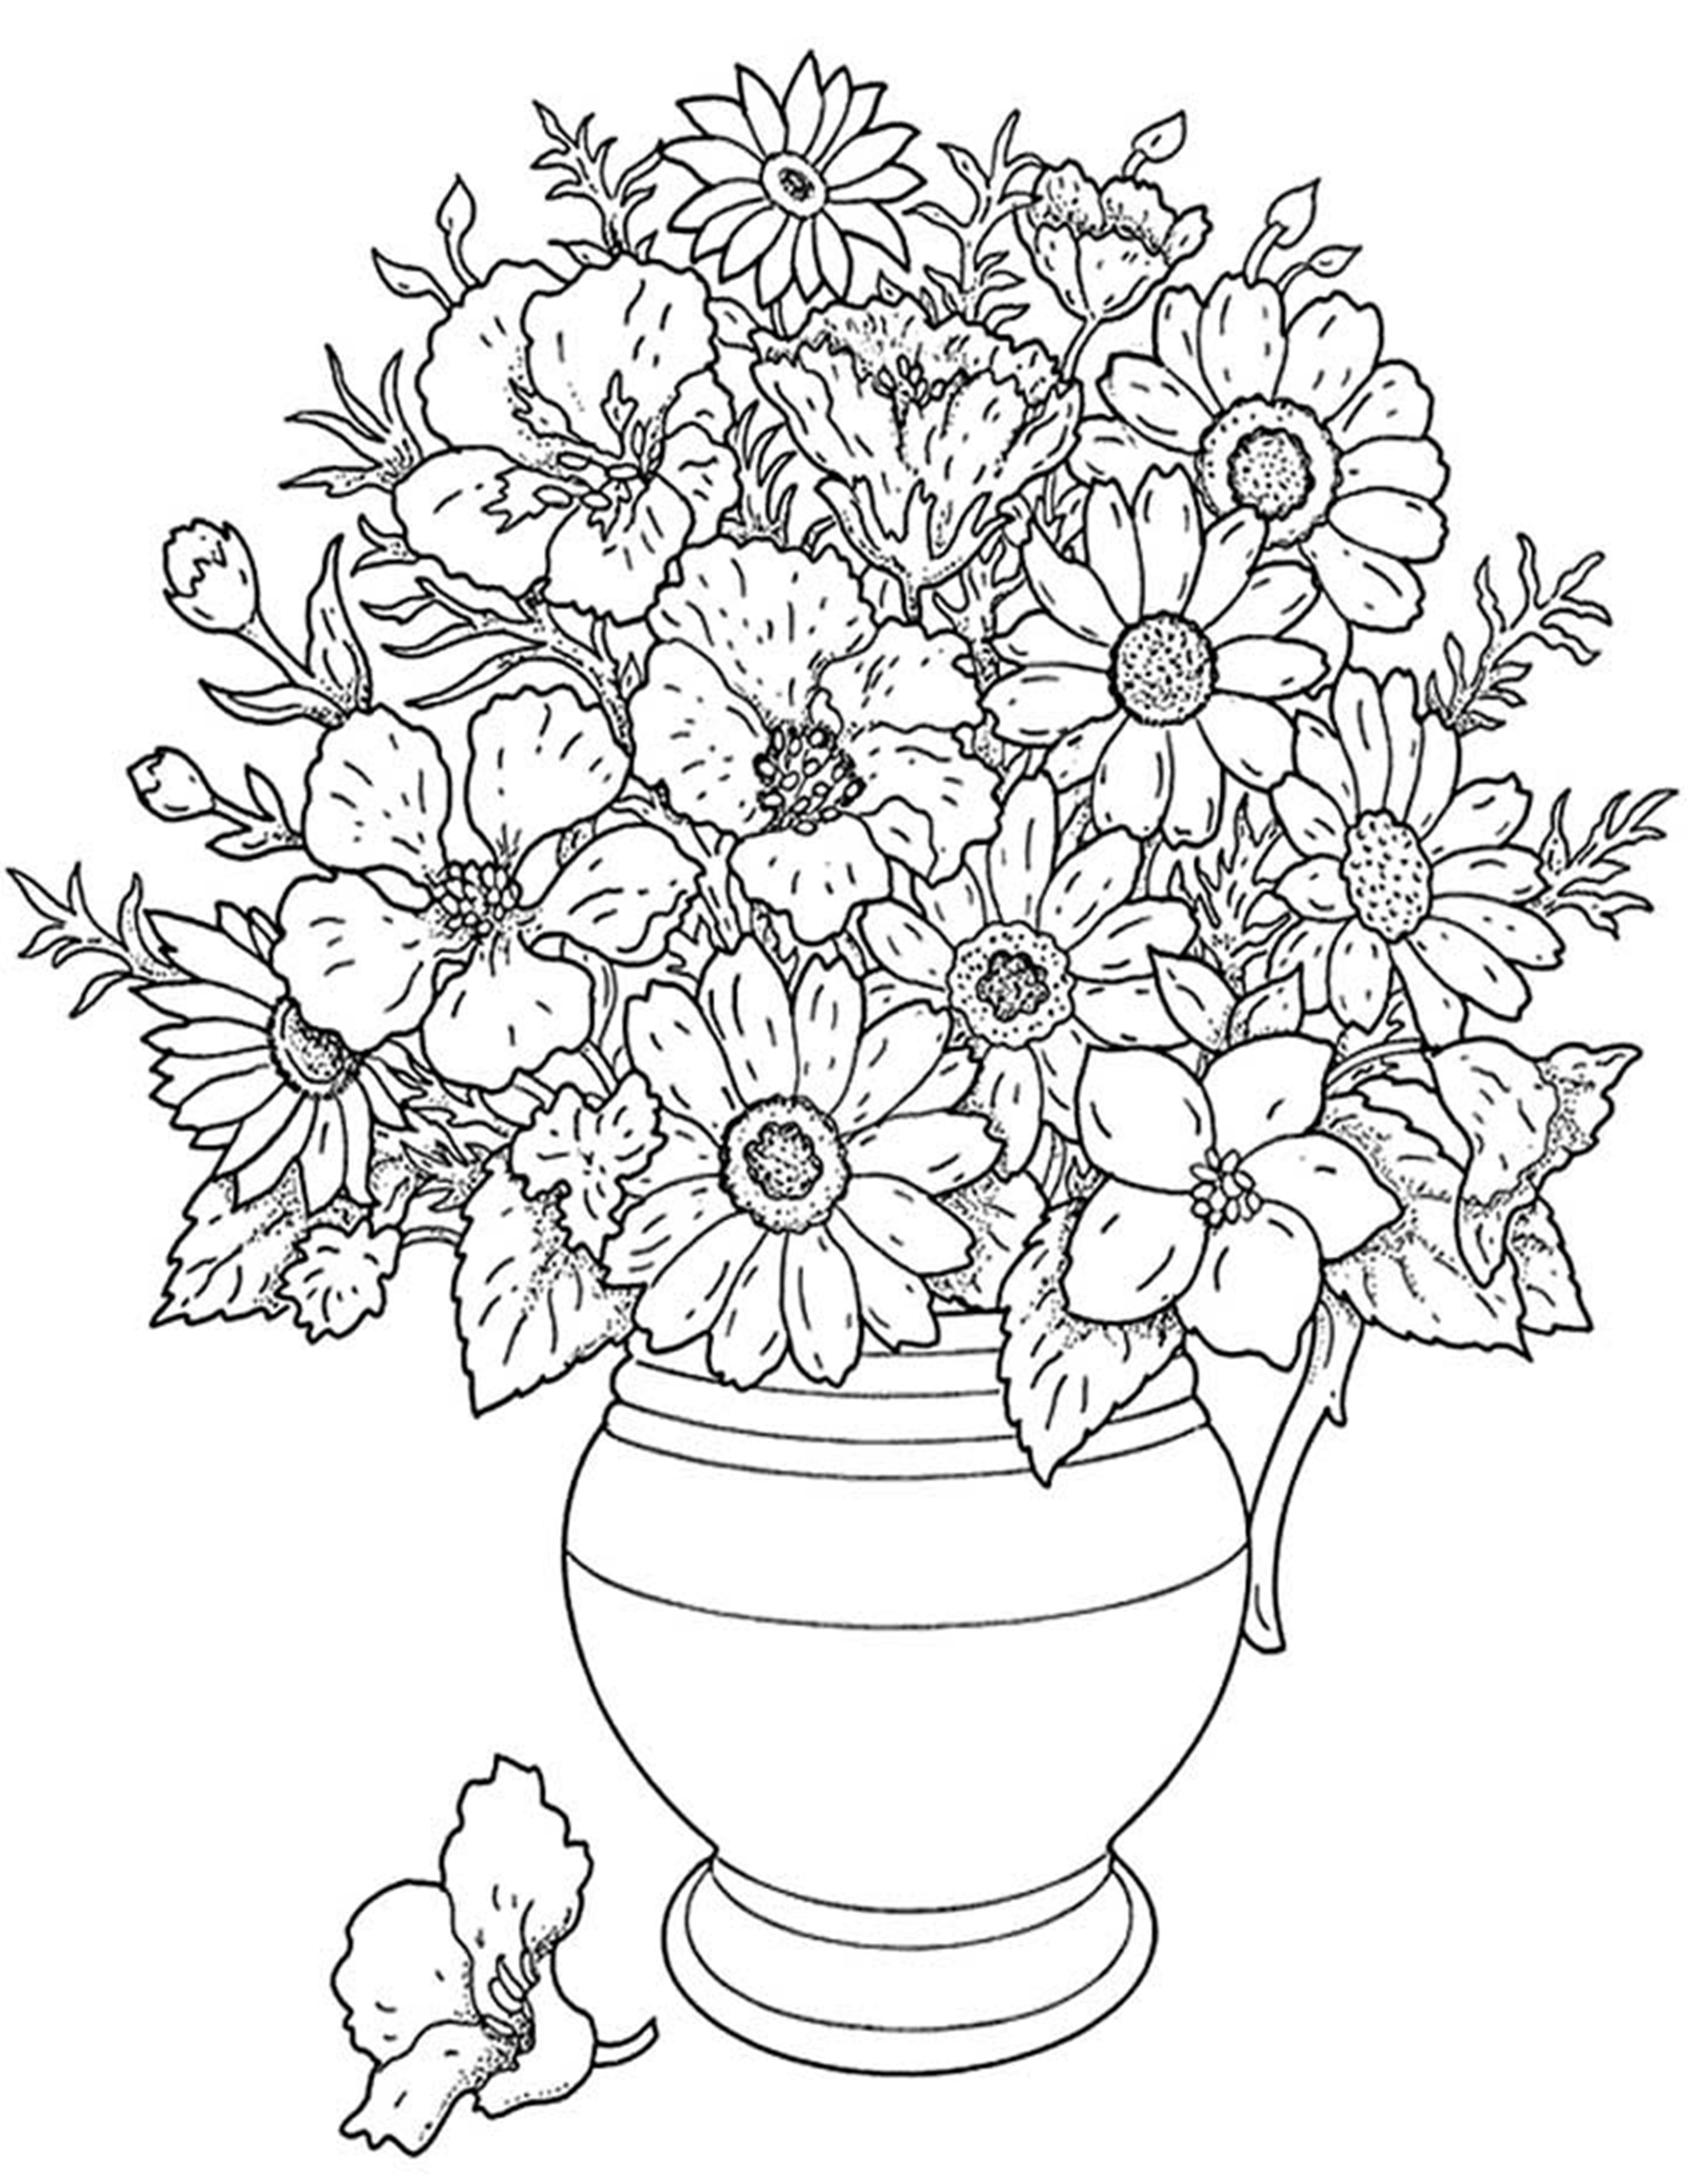 coloring pics of flowers free printable flower coloring pages for kids best of flowers pics coloring